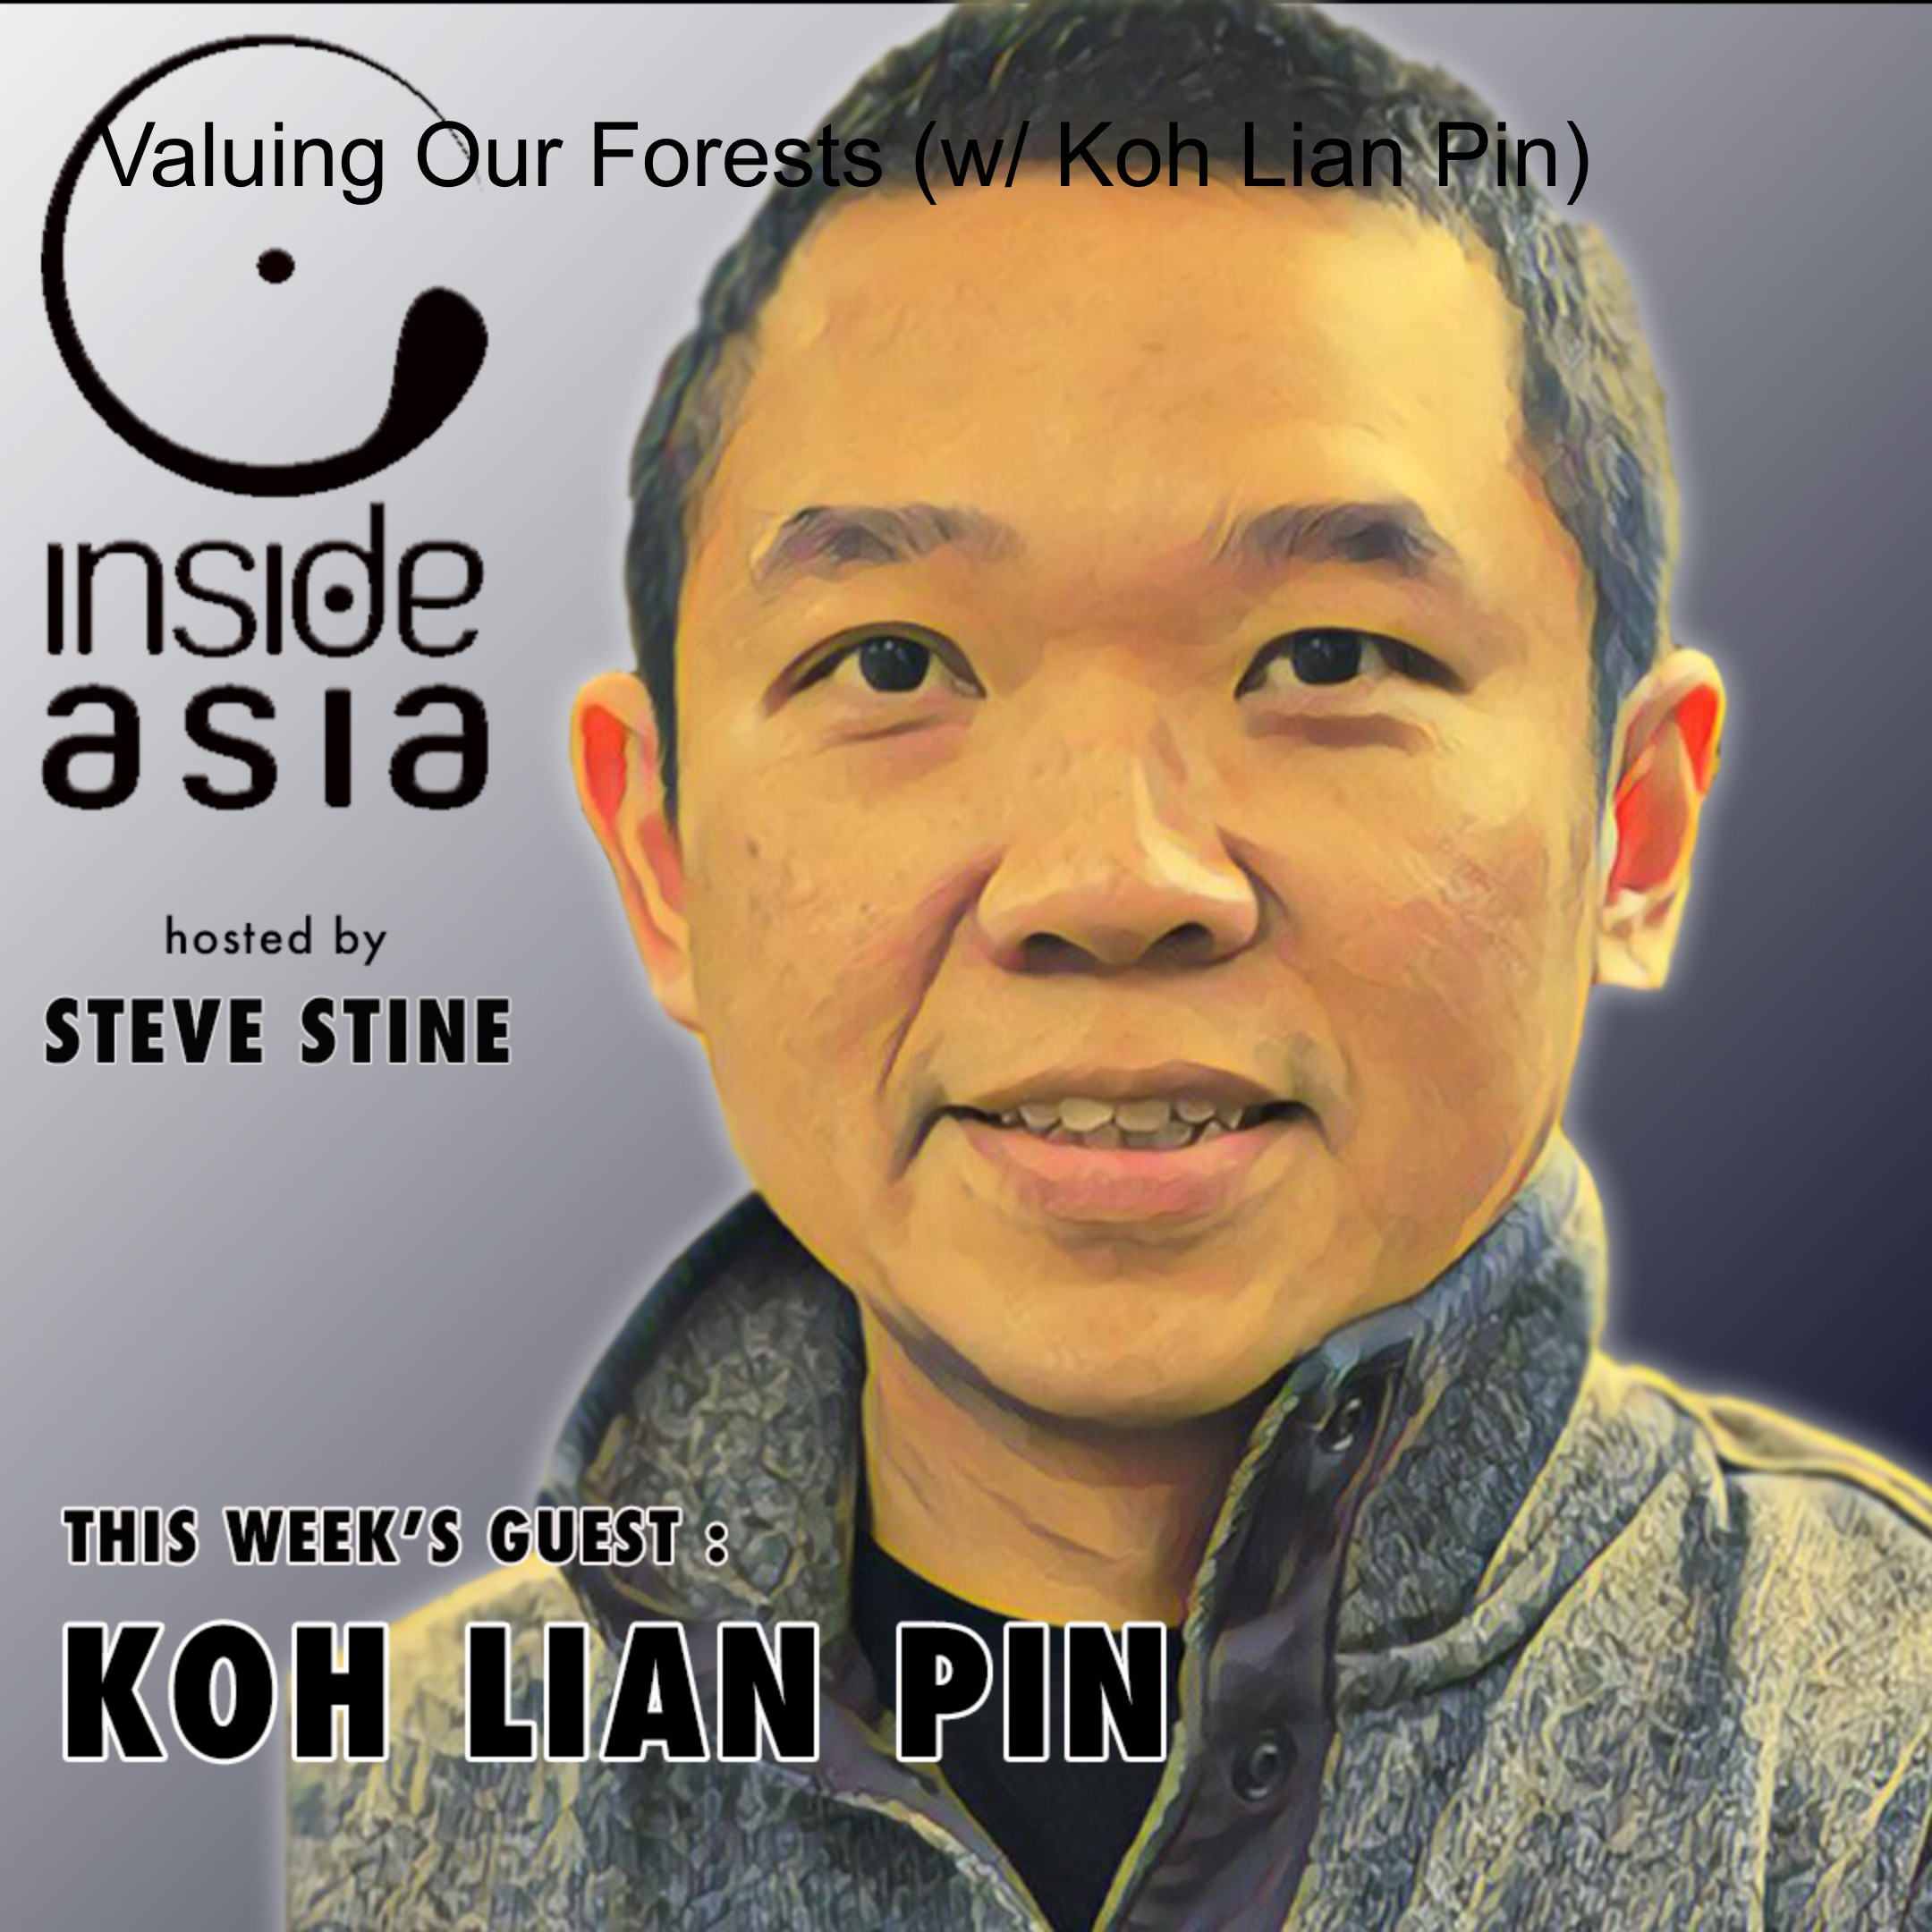 Valuing Our Forests (w/ Koh Lian Pin)